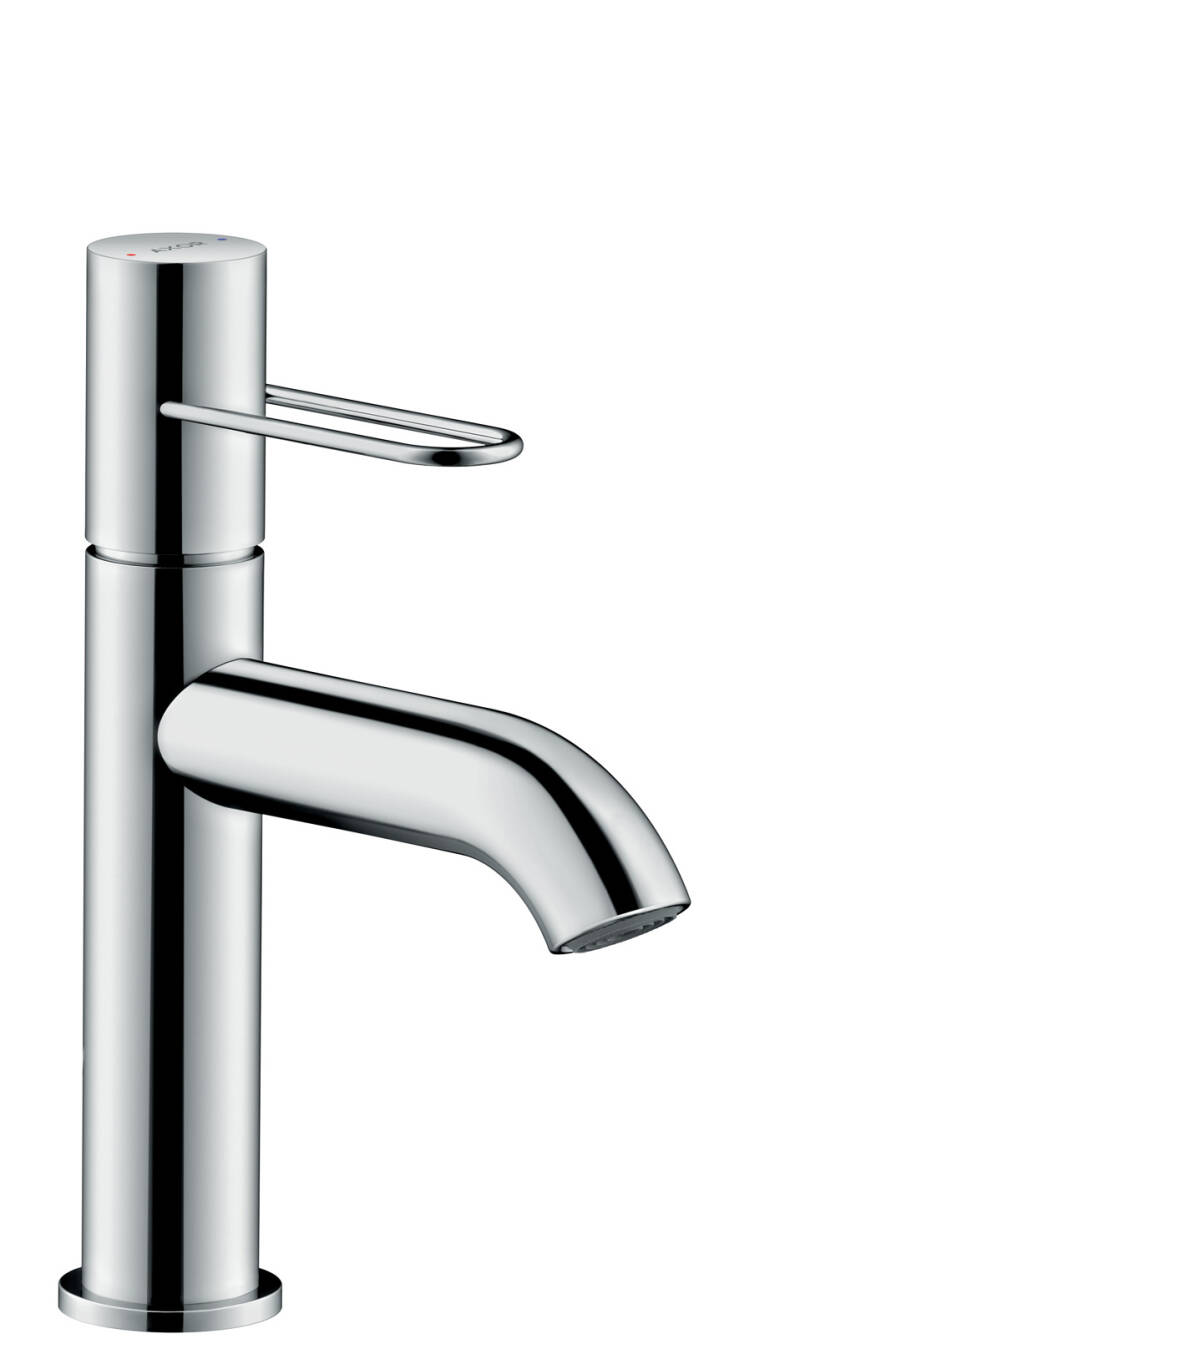 Single lever basin mixer 100 with loop handle and waste set, Chrome, 38026000